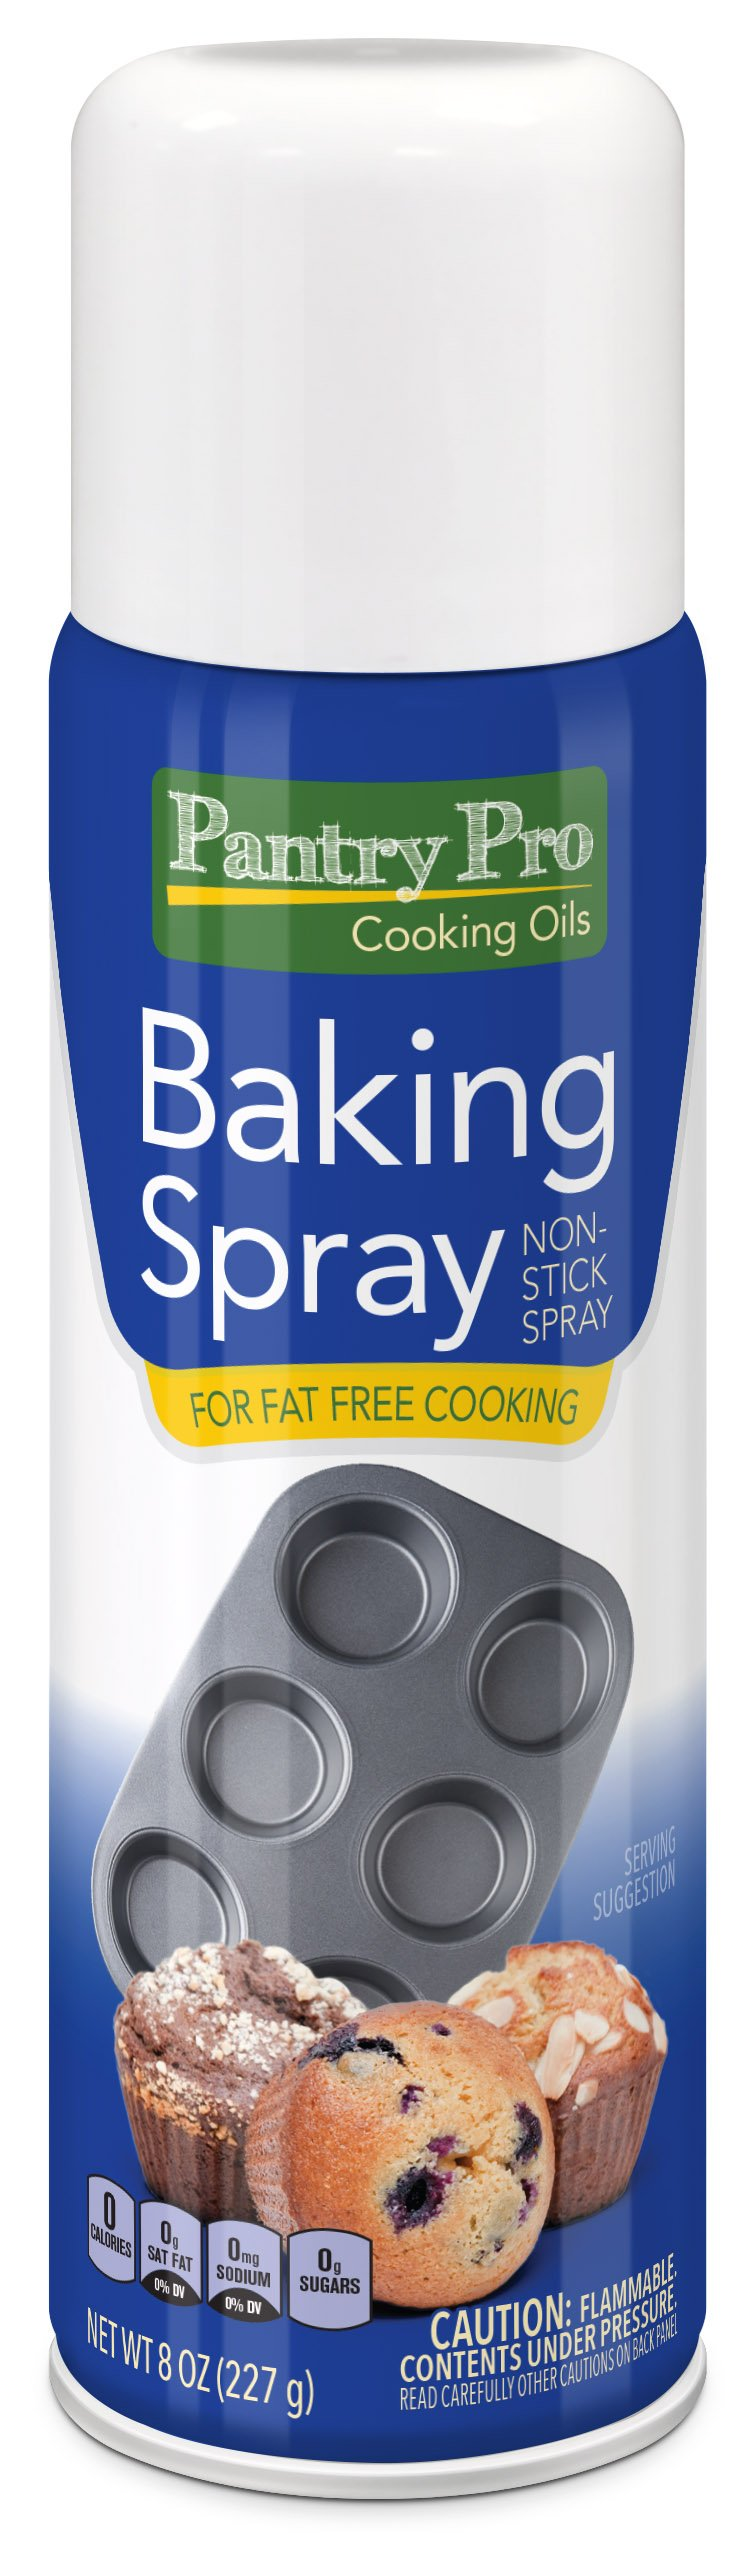 Pantry Pro Baking Cooking Spray, 8 Fluid Ounce (Pack of 4) by Pantry Pro